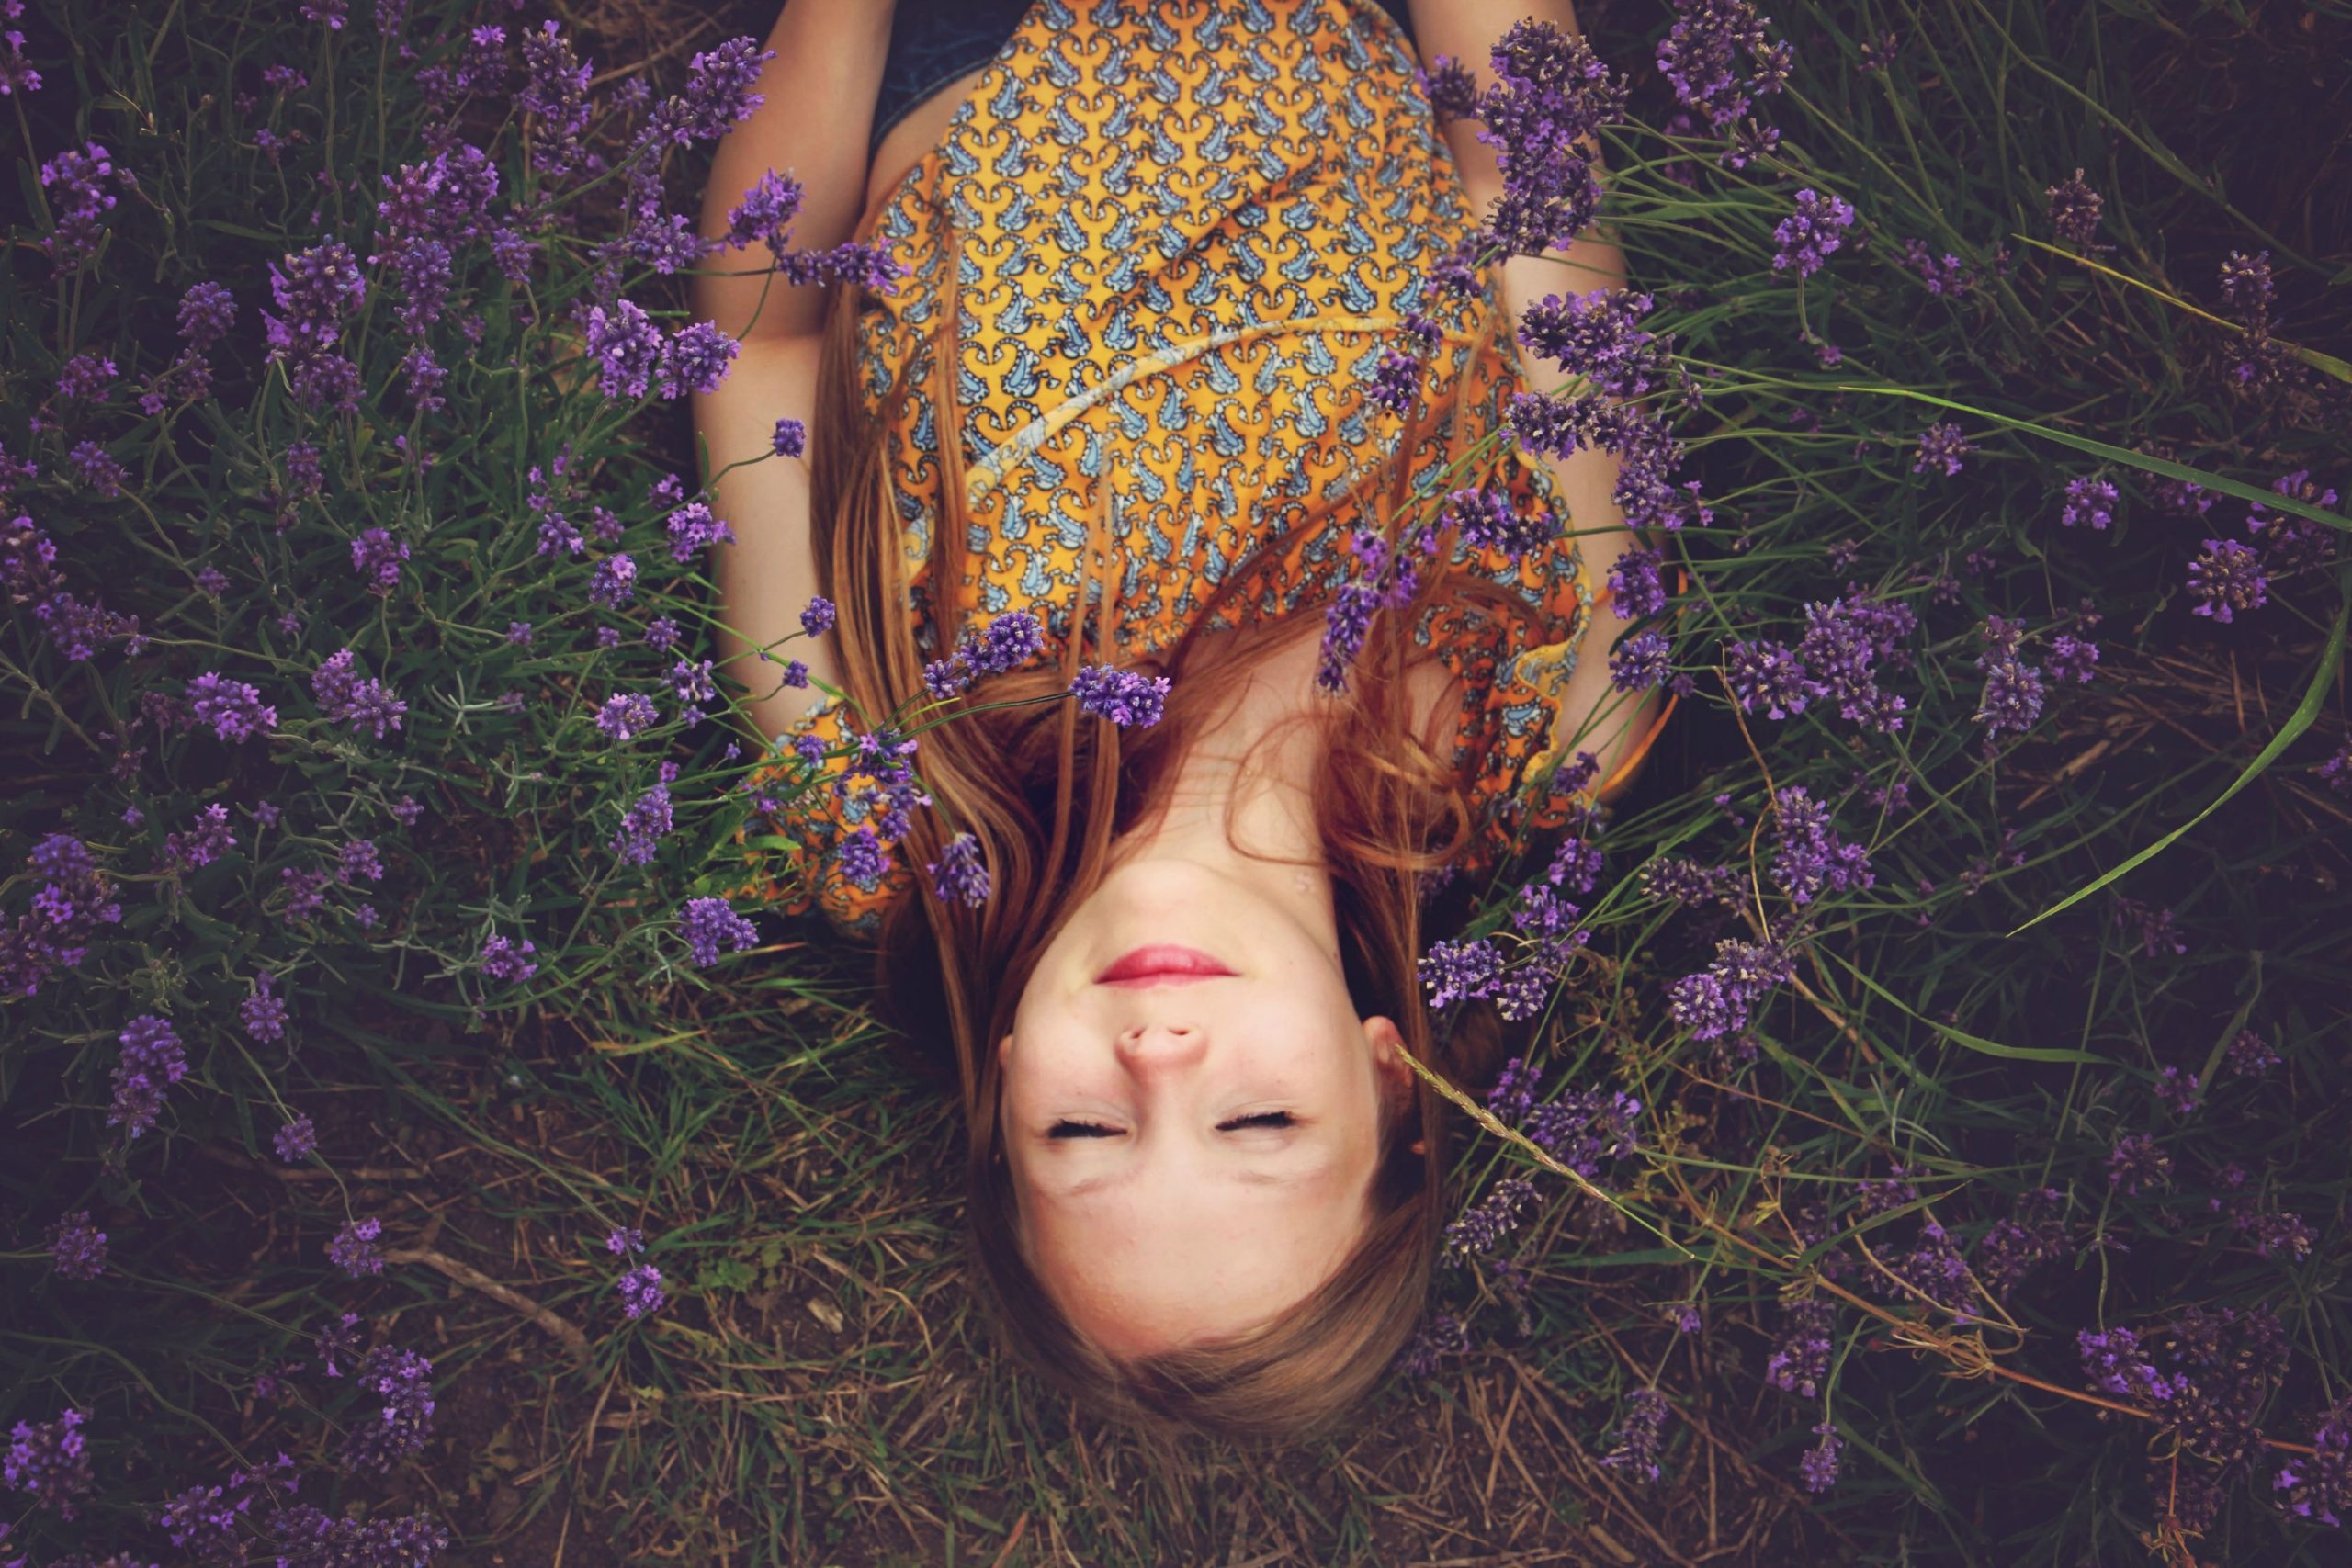 woman in yellow and teal top sleeping beside lavenders